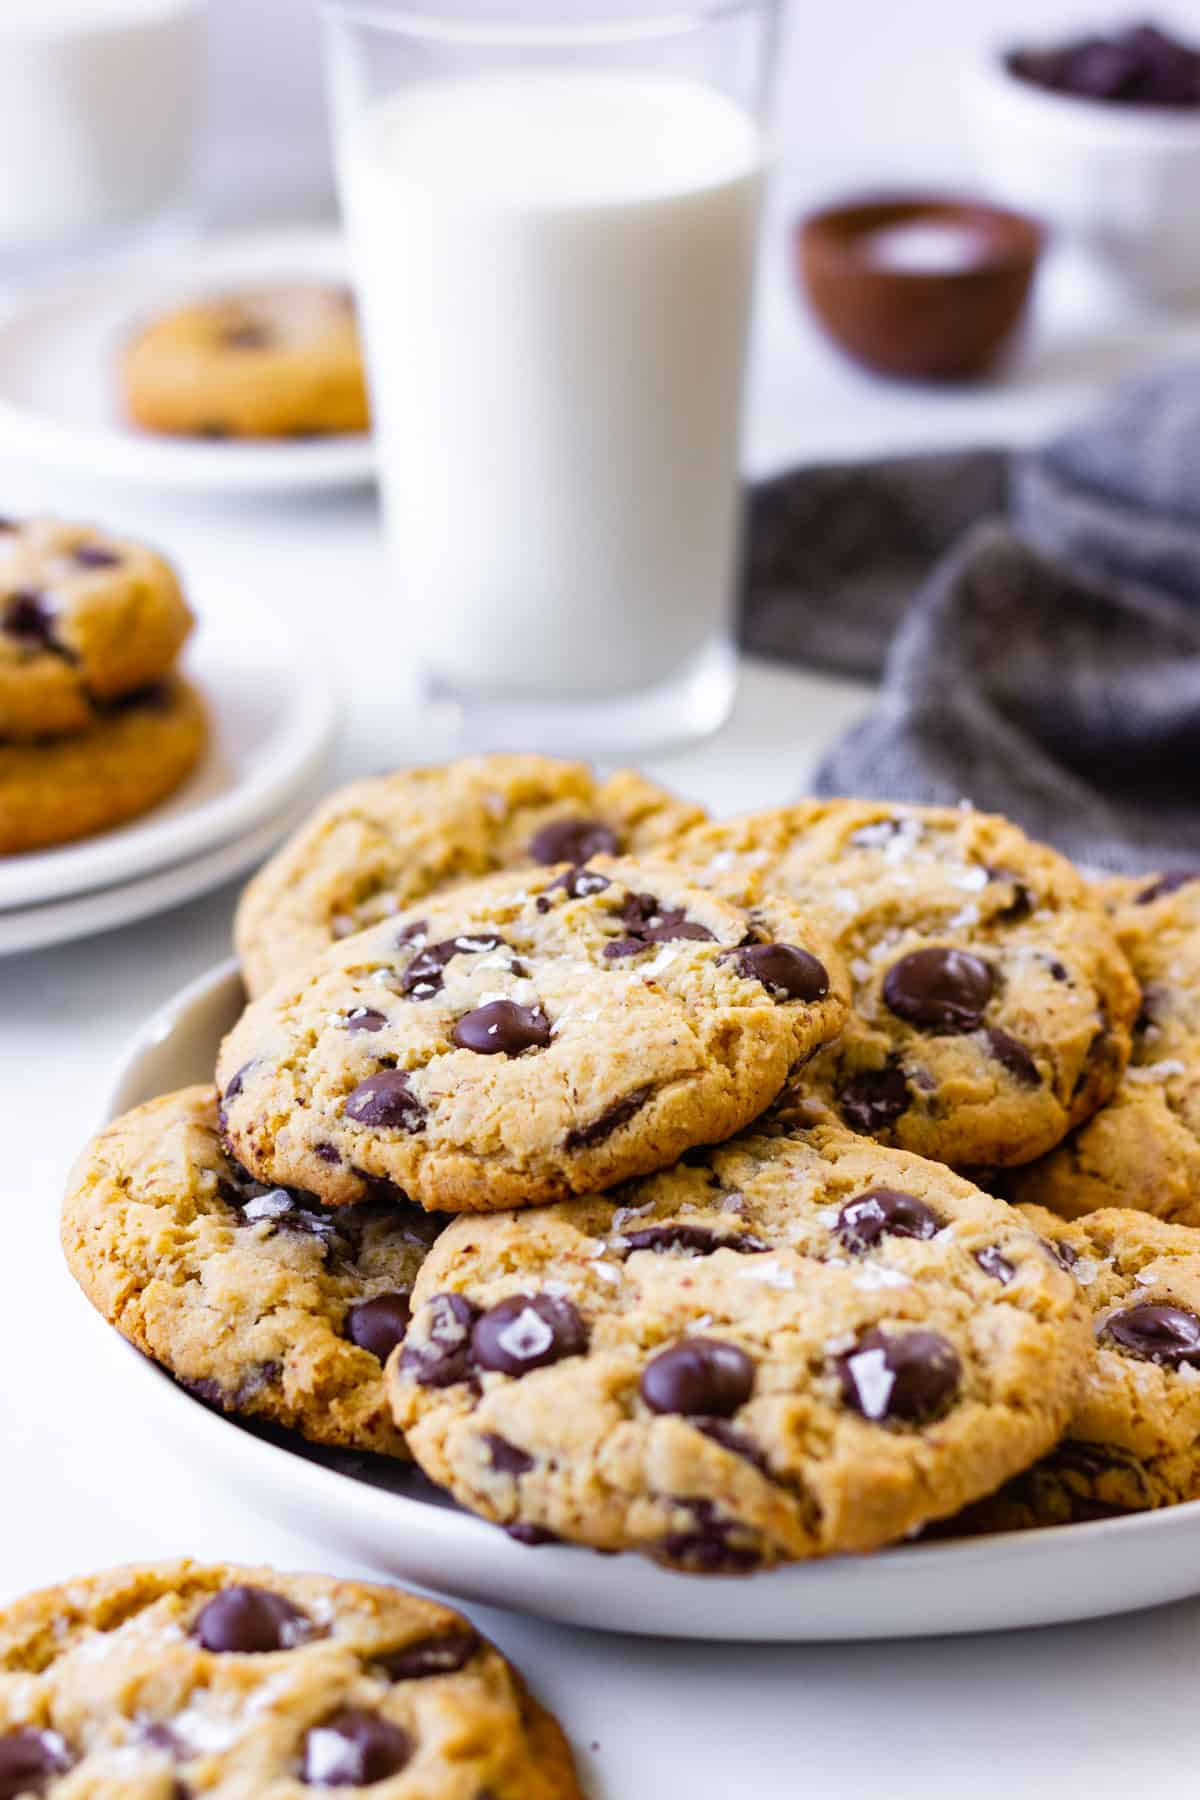 A plate full of cookies with a glass of milk.